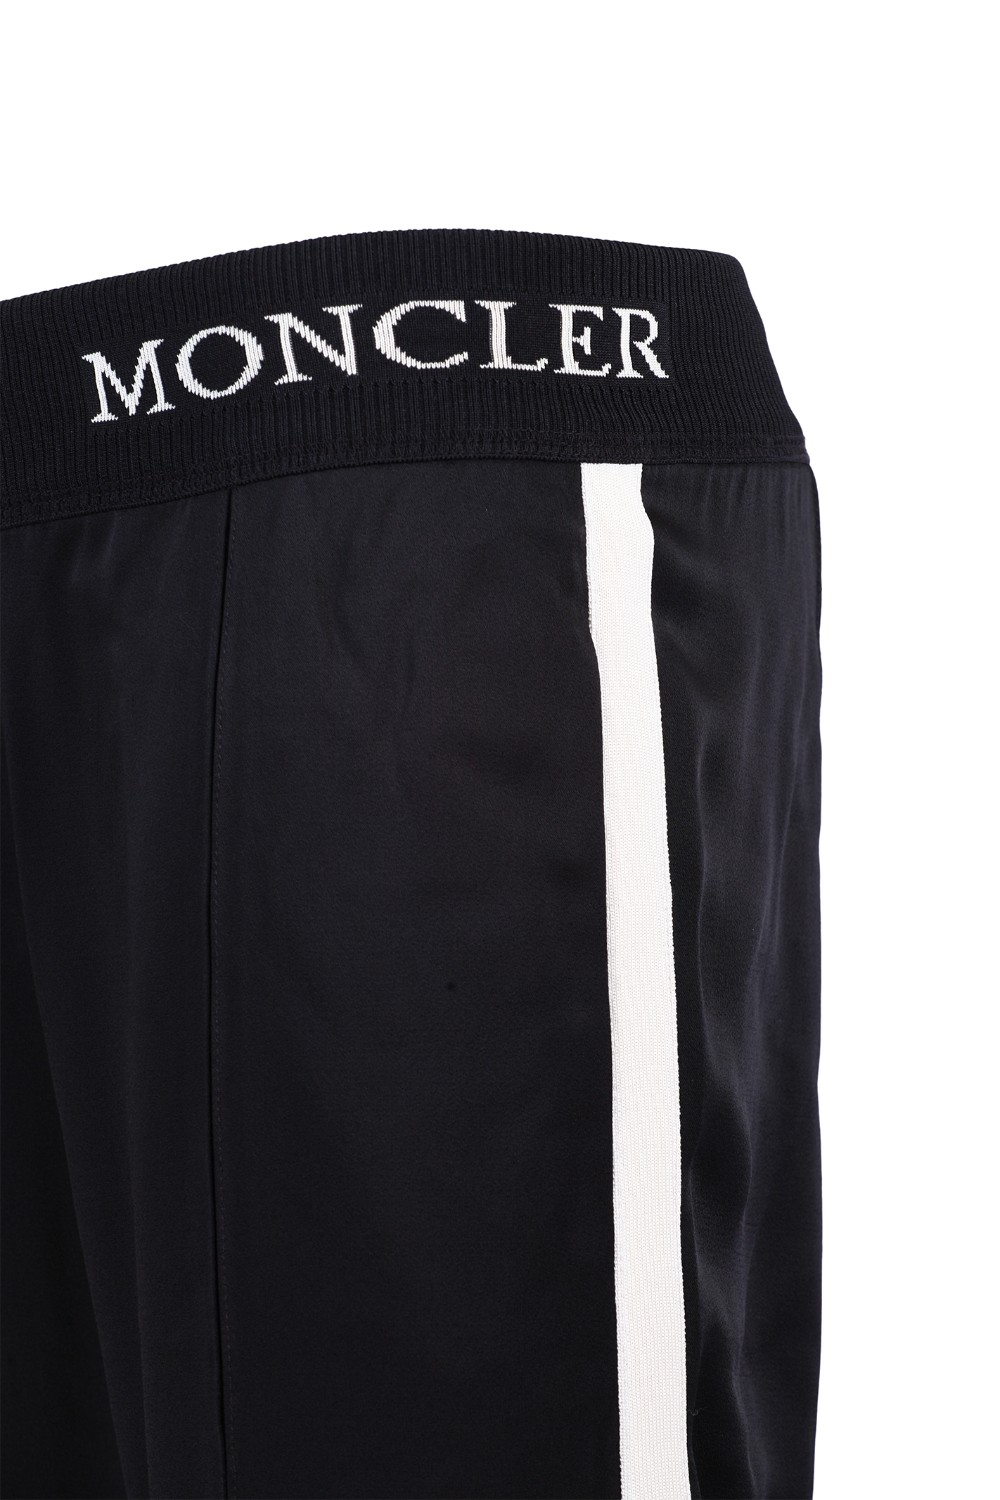 shop MONCLER  Pantalone: Moncler pantalone in envers satin di colore nero. Punto vita a costine con scritta Moncler. Tasche laterali a filetto. Banda lungo i fianchi a costine a contrasto. Vestibilità regolare. Composizione: 78% acetato 21% viscosa 1% elastan.. 16500 00 C0006-999 number 1002799